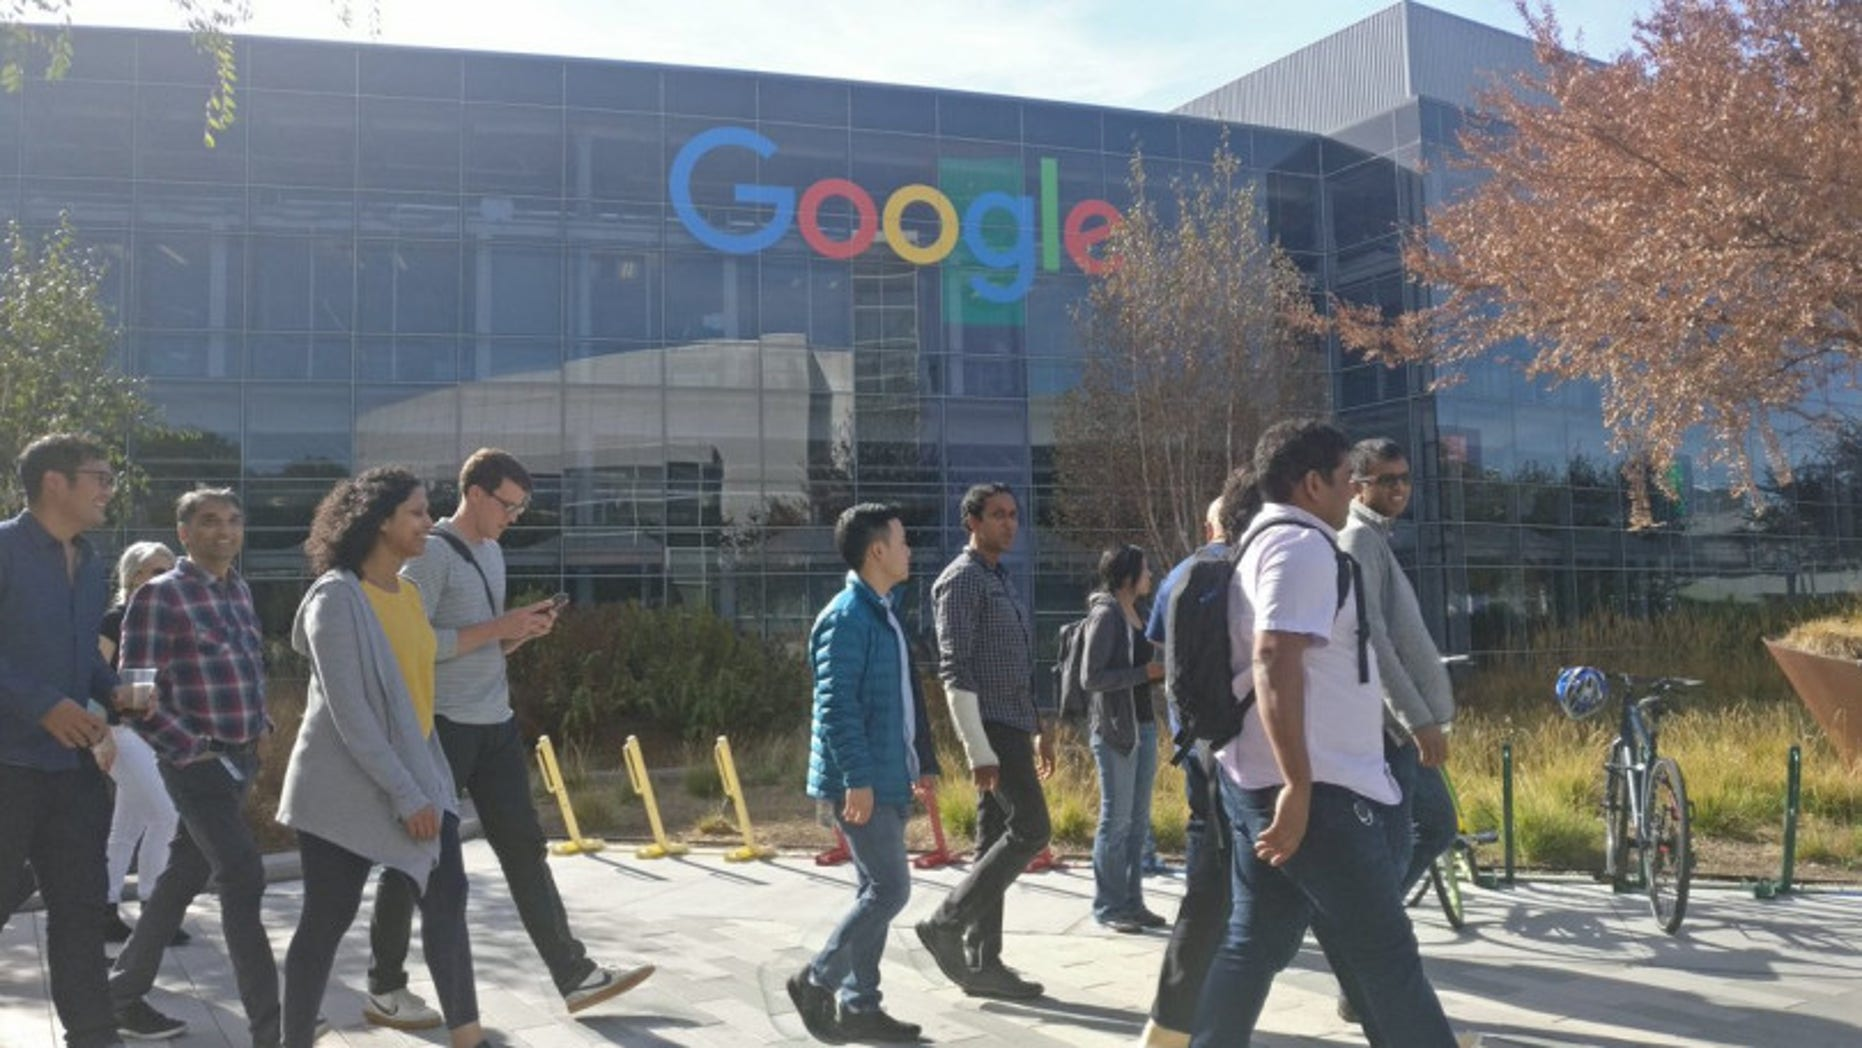 Google issues MEASLES warning to staff after infected worker visited campus